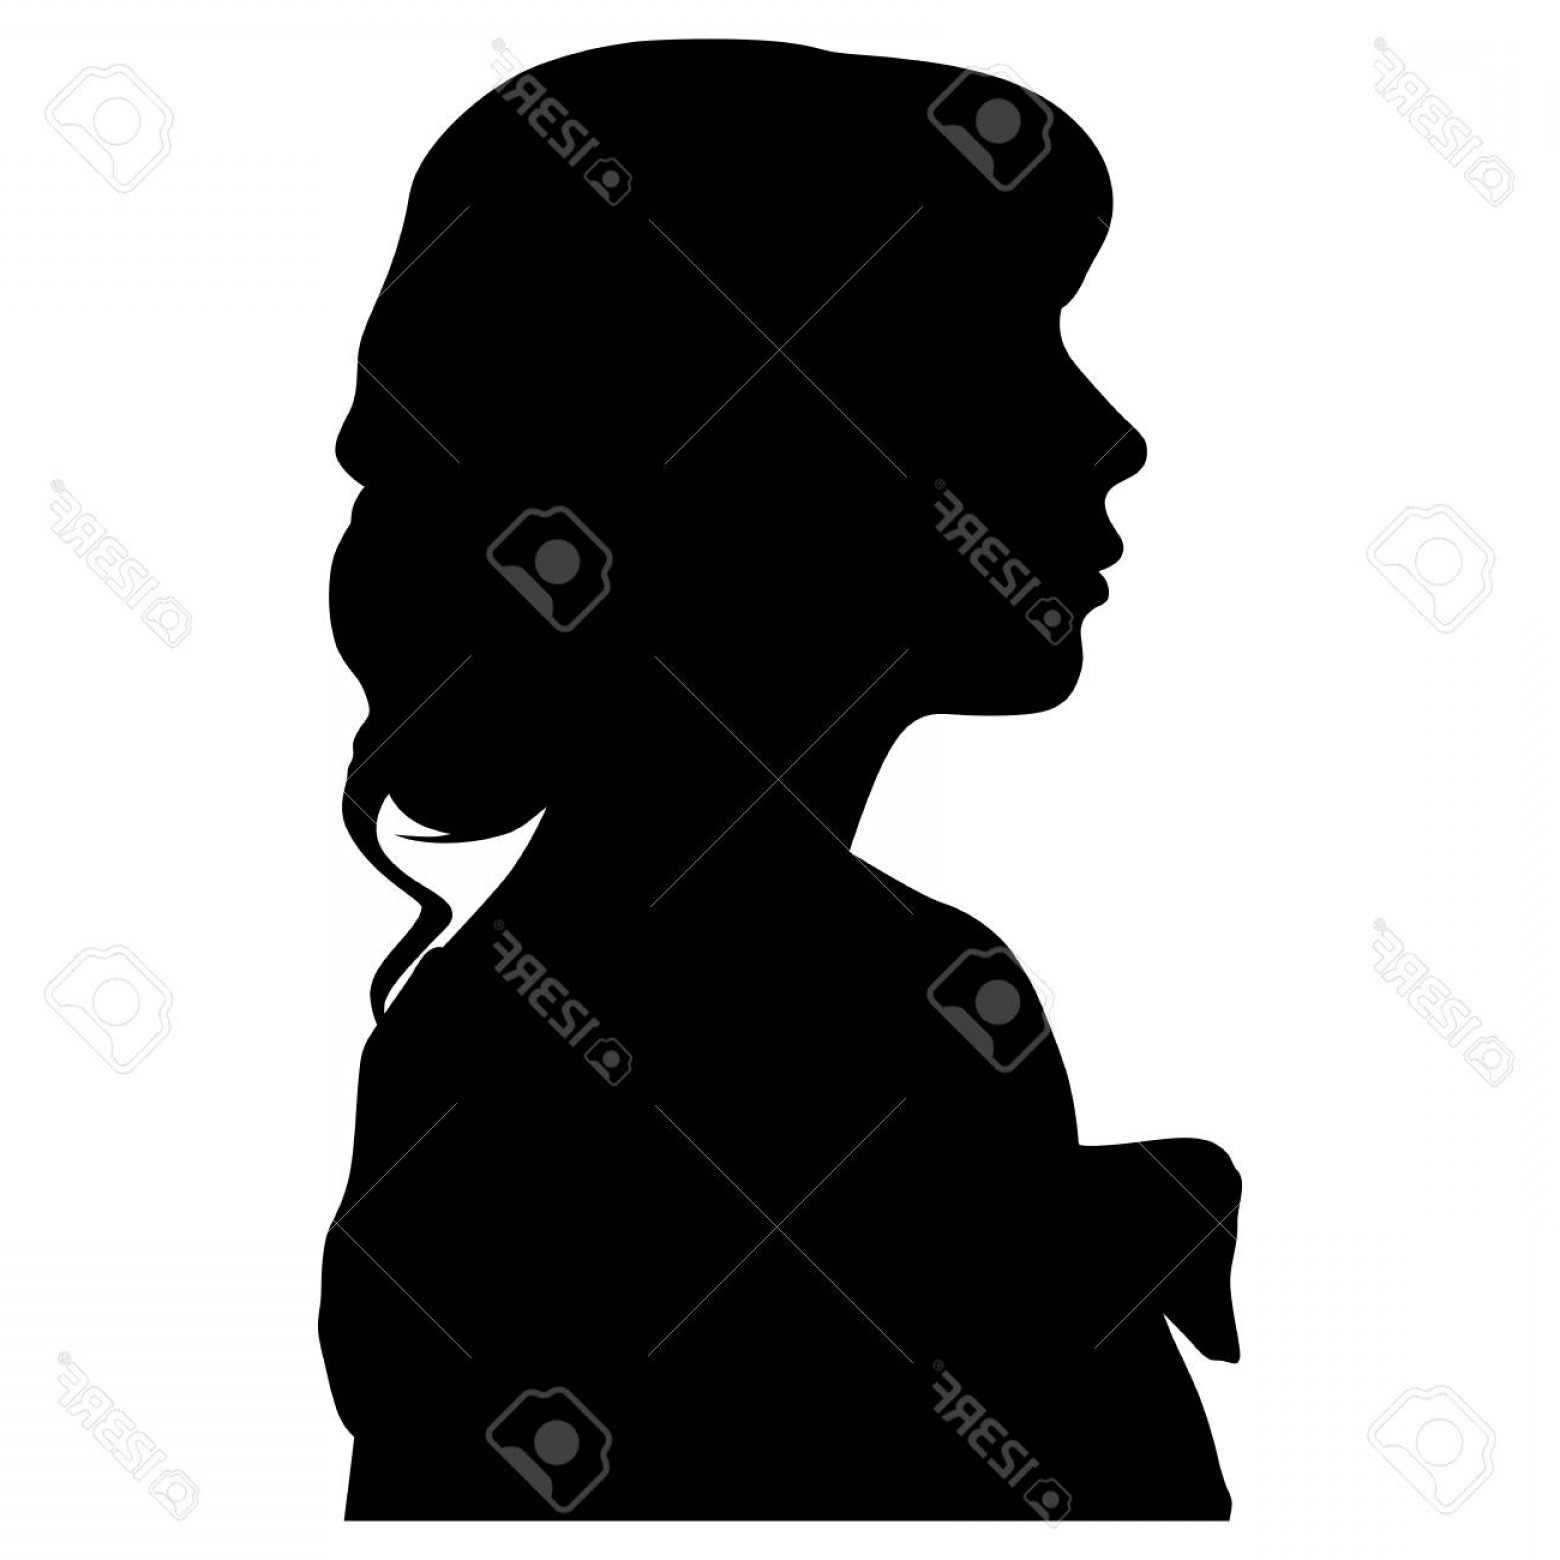 Soldier Woman Profile Vector: Photosilhouette Of A Woman In Profile